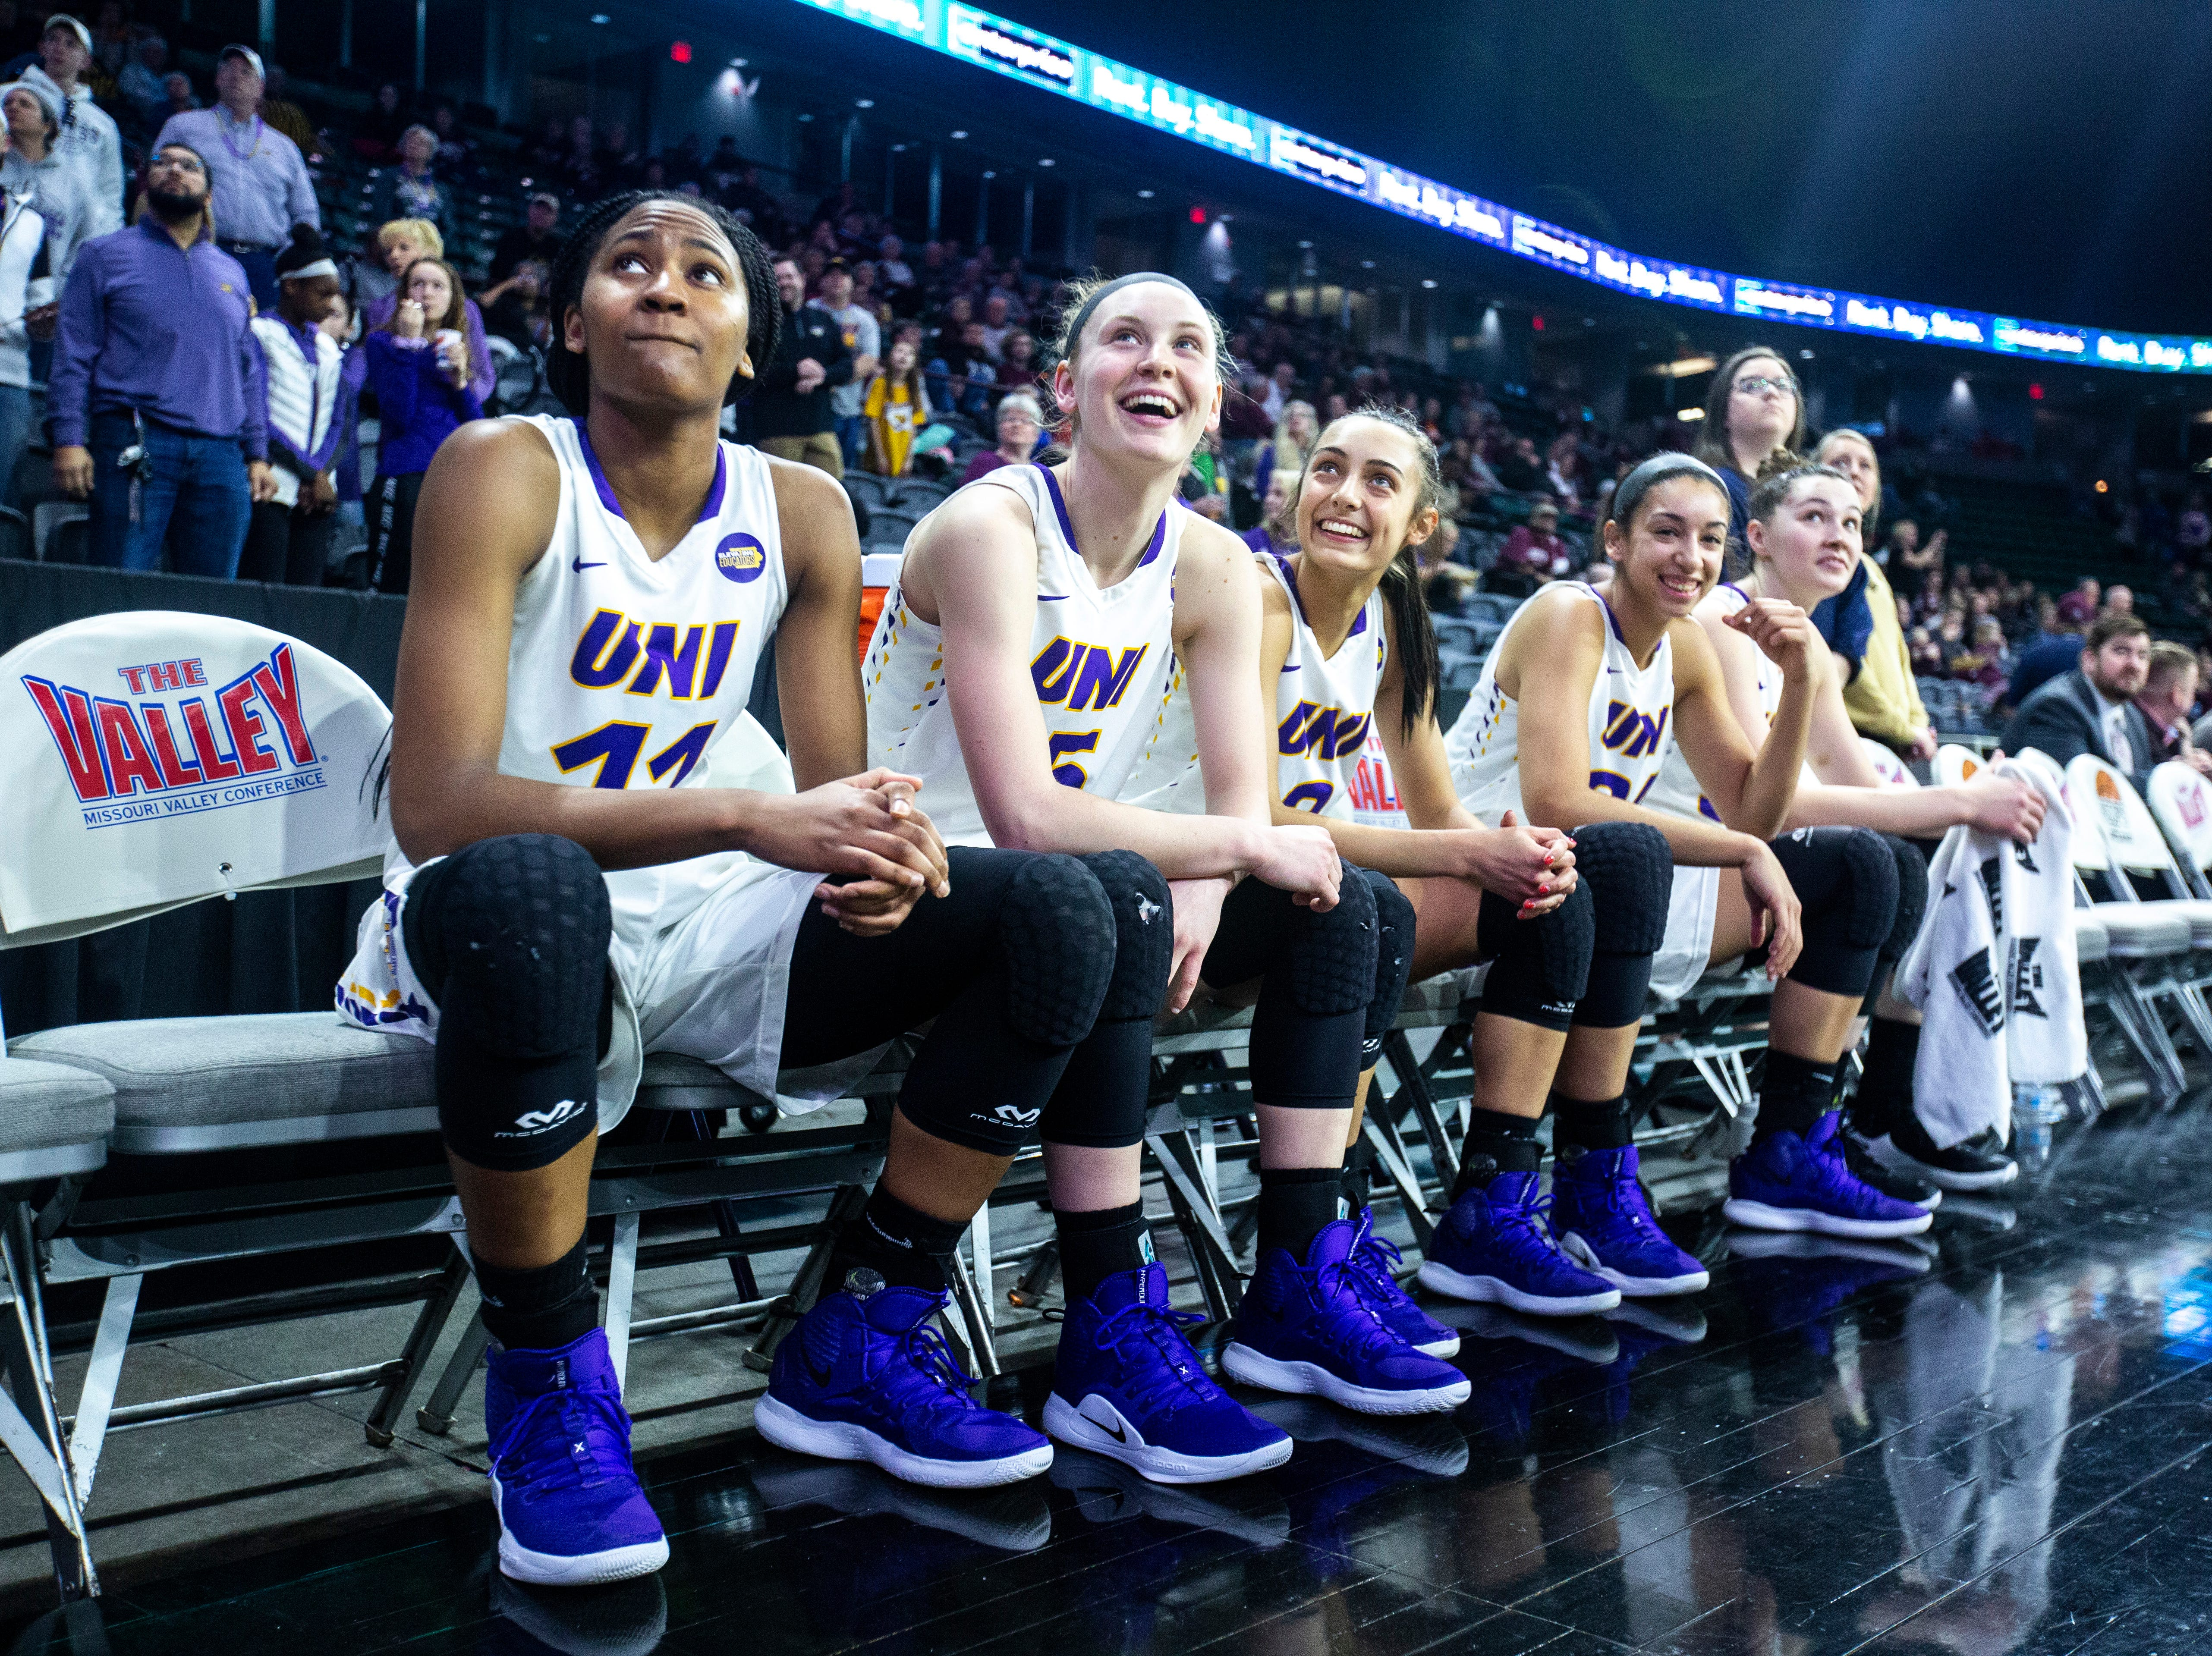 Northern Iowa Panthers, from left, Bre Gunnels, Nicole Kroeger, Karli Rucker, Mikaela Morgan and Taylor Hagen watch their introduction video during a NCAA Missouri Valley Conference women's basketball quarterfinal tournament game, Friday, March 15, 2019, at the TaxSlayer Center in Moline, Illinois.